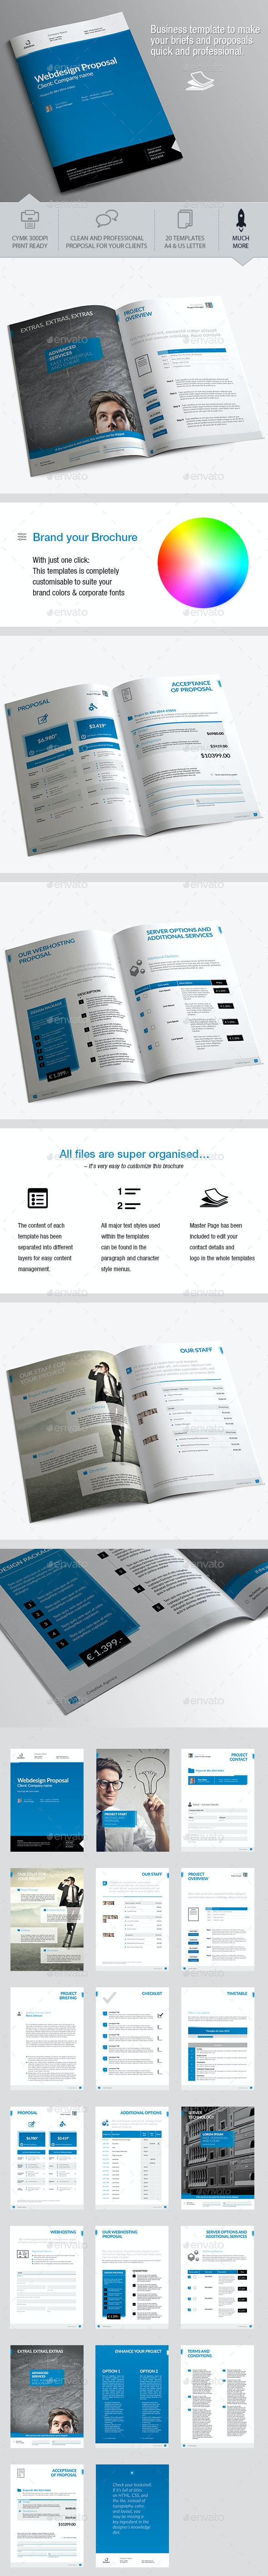 Webdesign Proposal - Proposals & Invoices Stationery